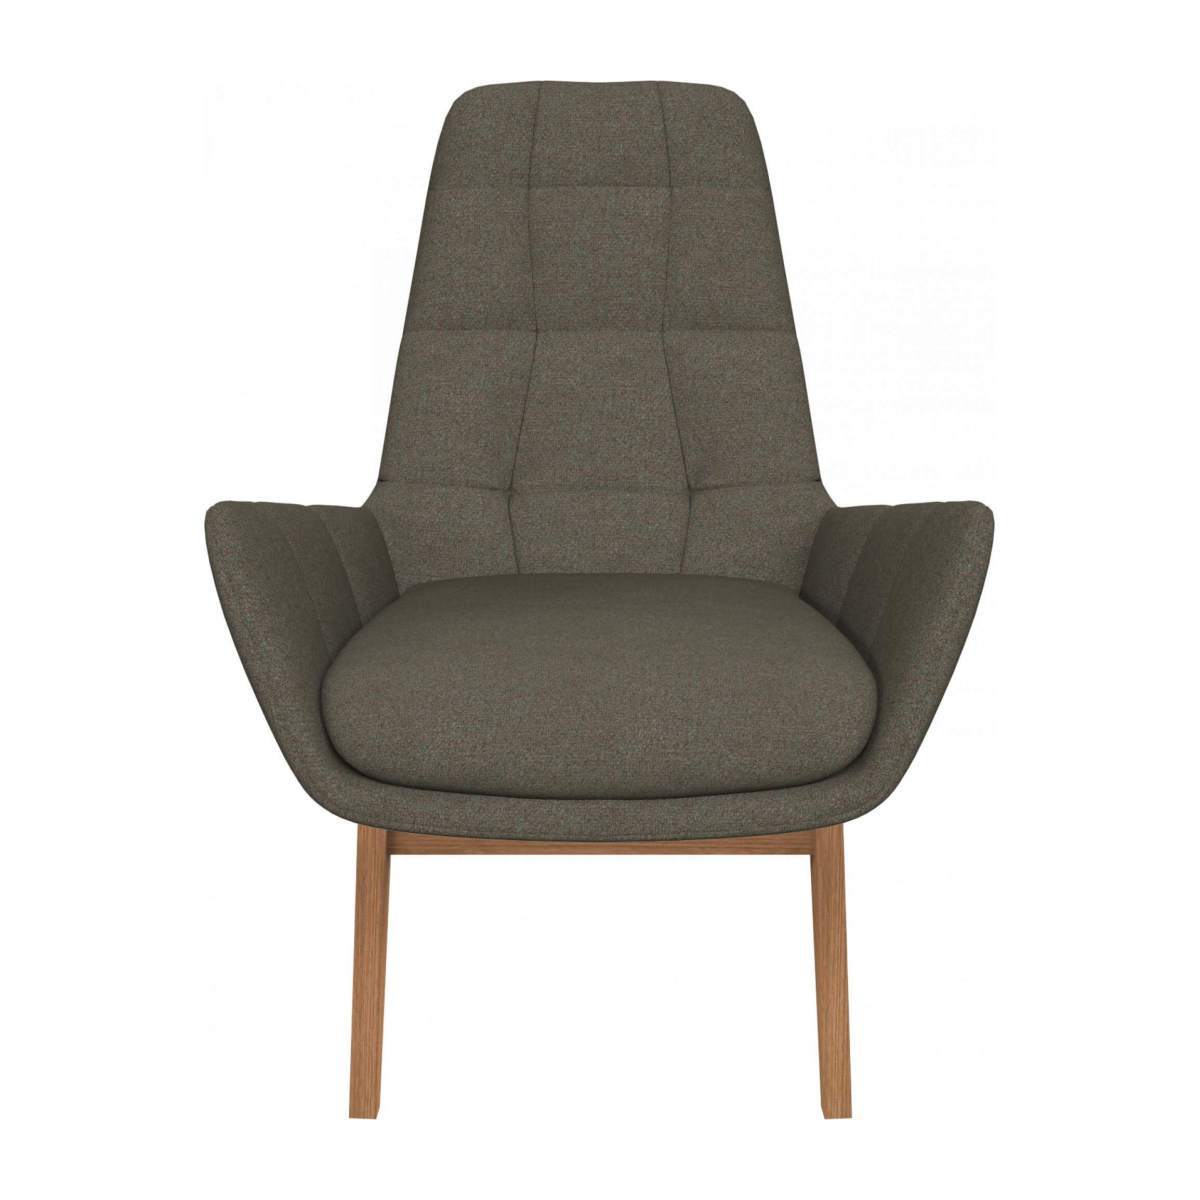 Armchair in Lecce fabric, slade grey with oak legs n°1